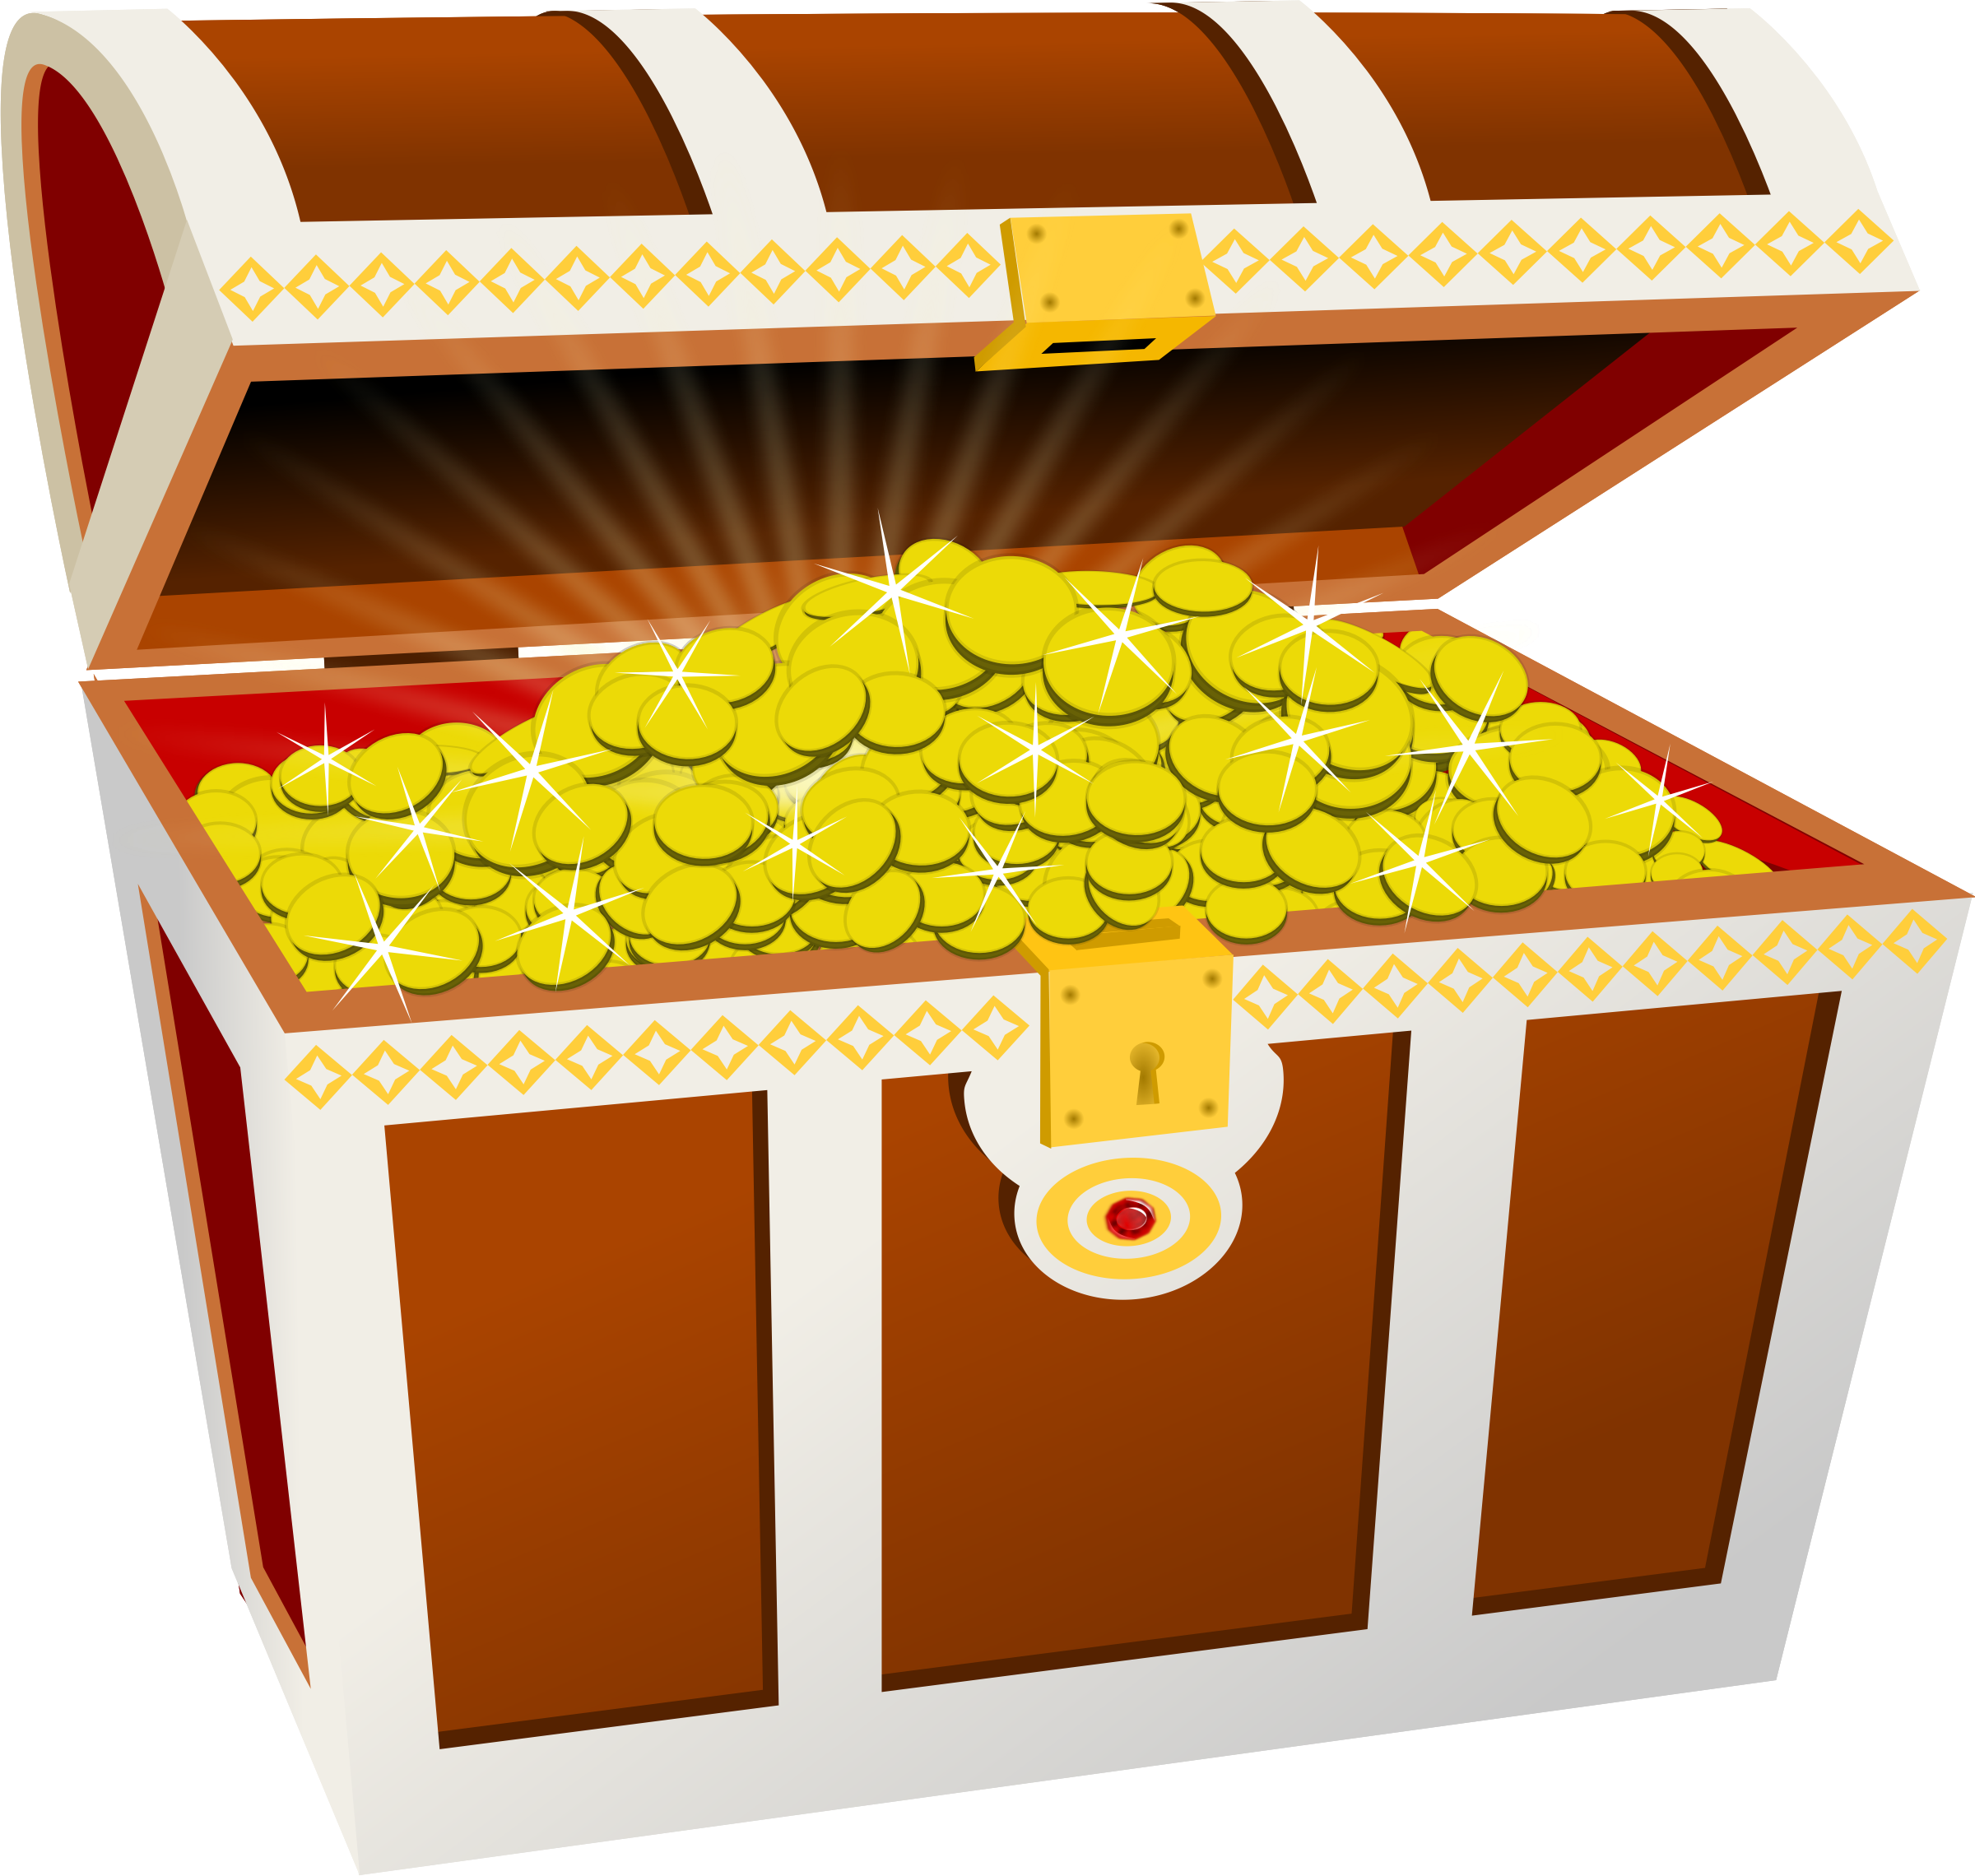 Clipart money gold image library download Clipart - Treasure chest image library download